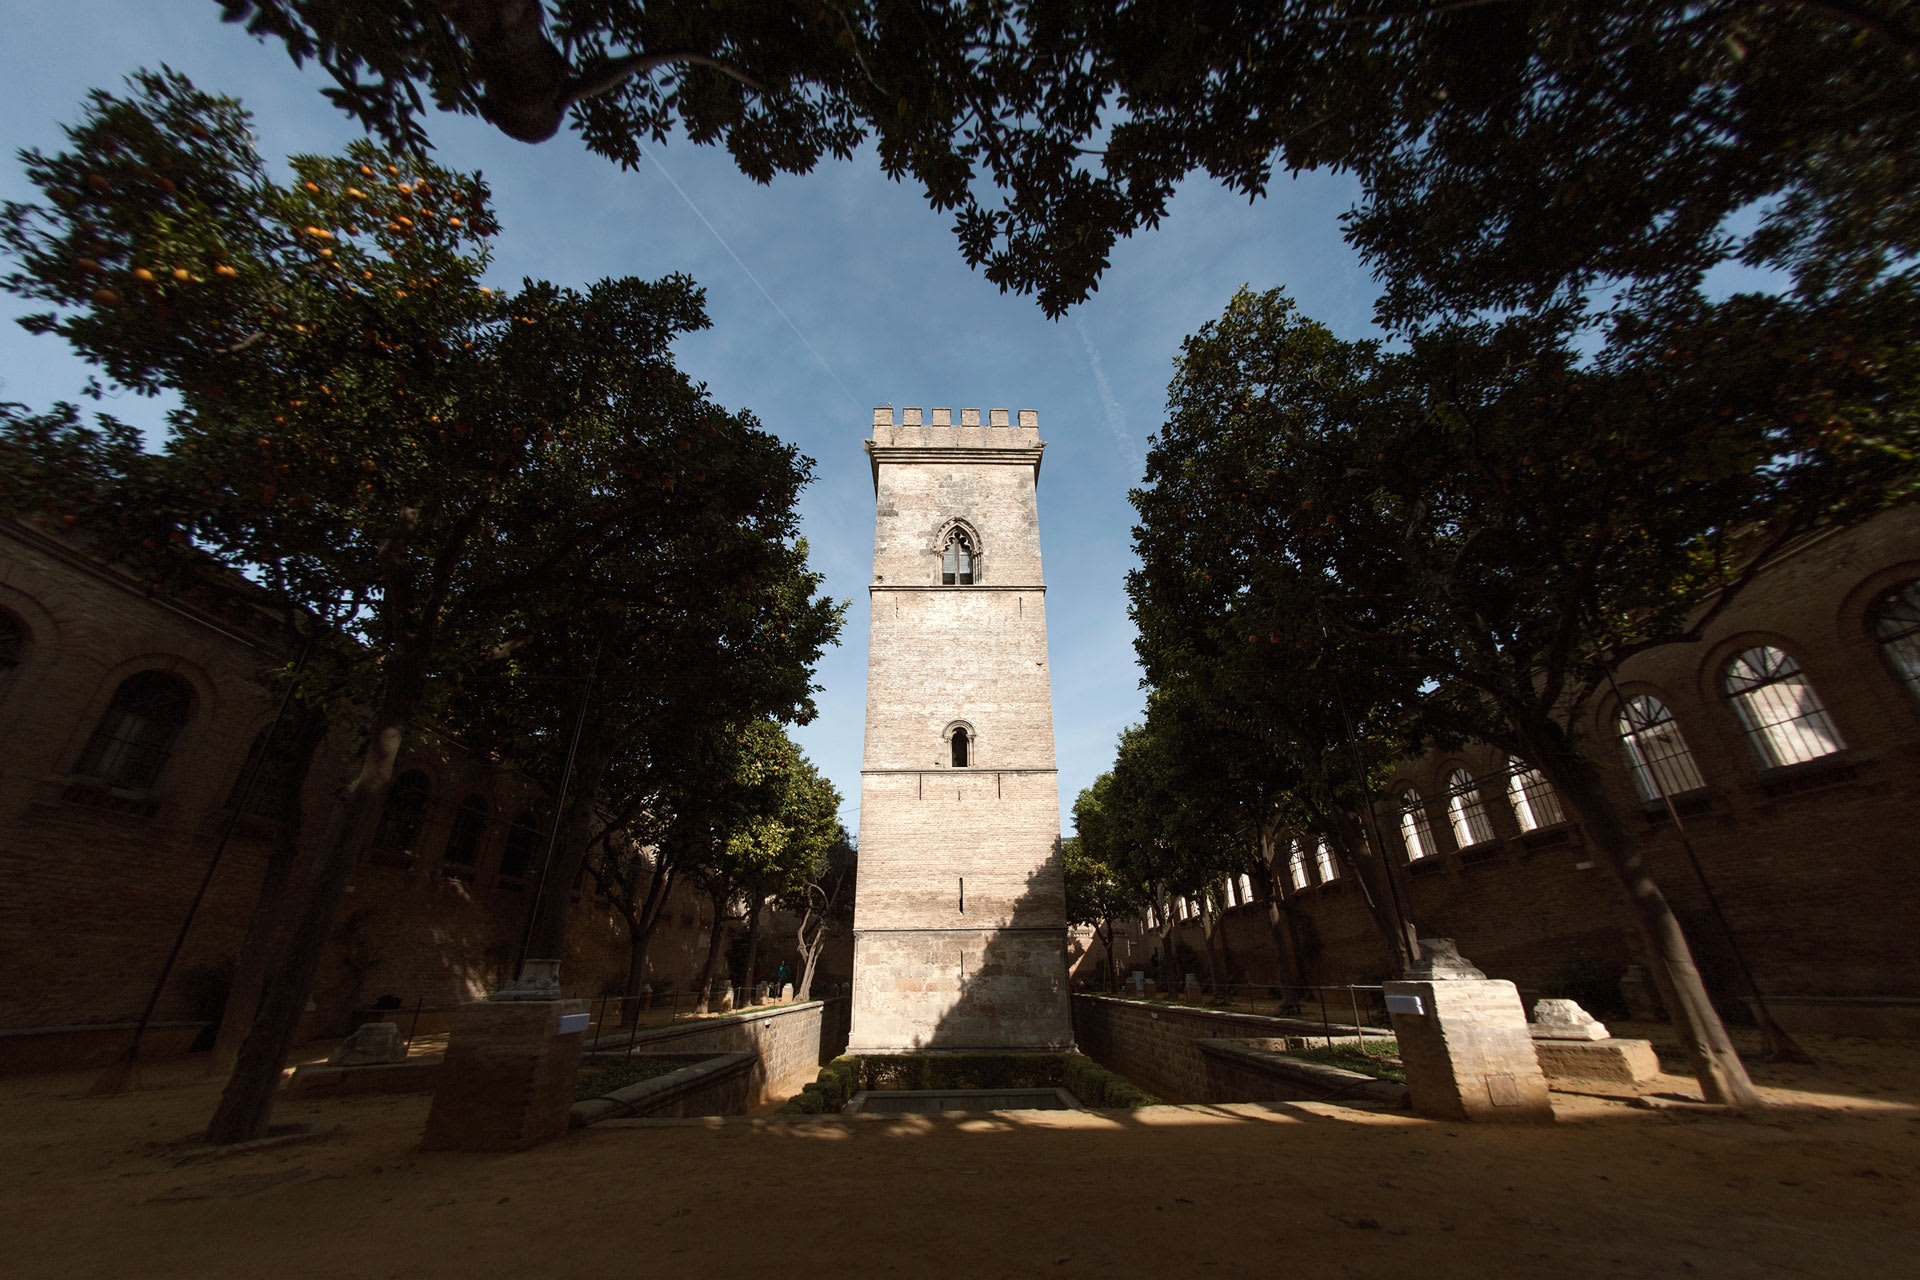 Seville - Mysteries of the Enchanted Tower